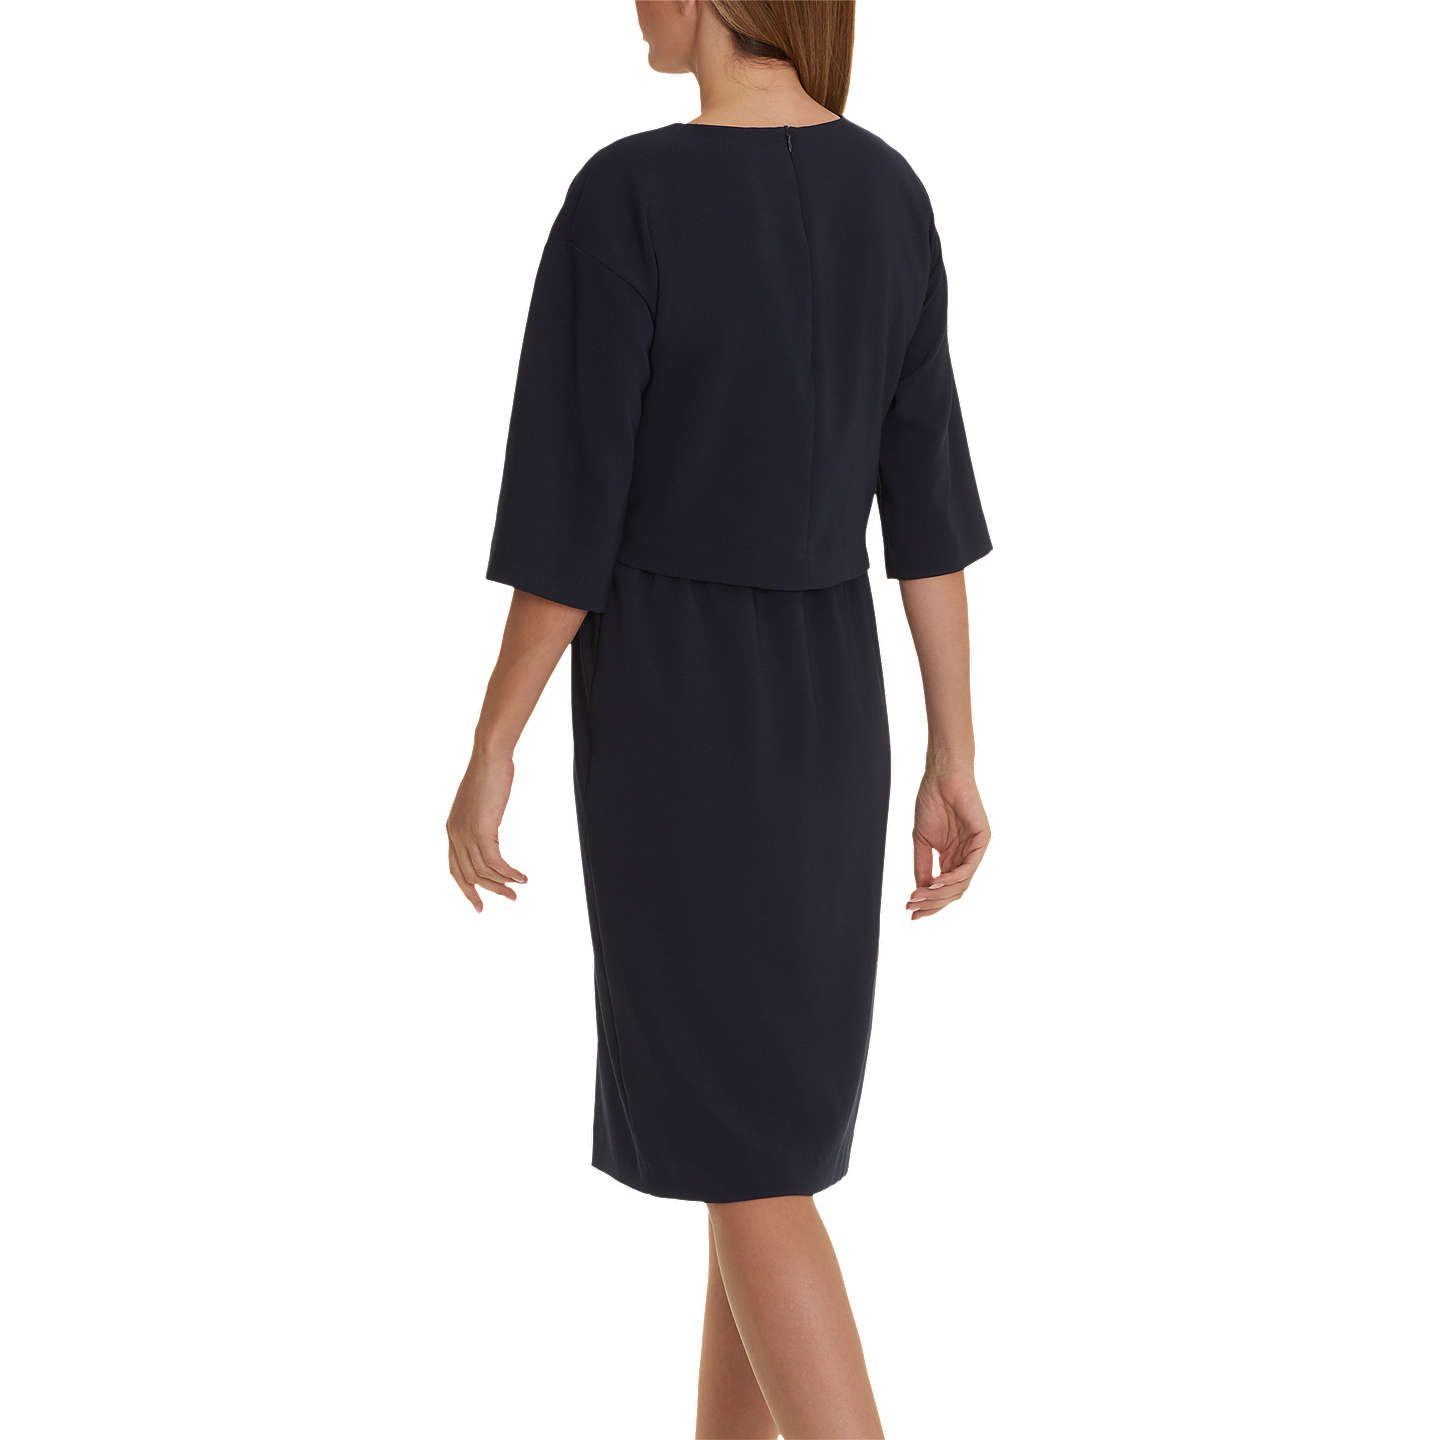 BuyBetty & Co. Crepe Layered Dress, Dark Sapphire, 10 Online at johnlewis.com